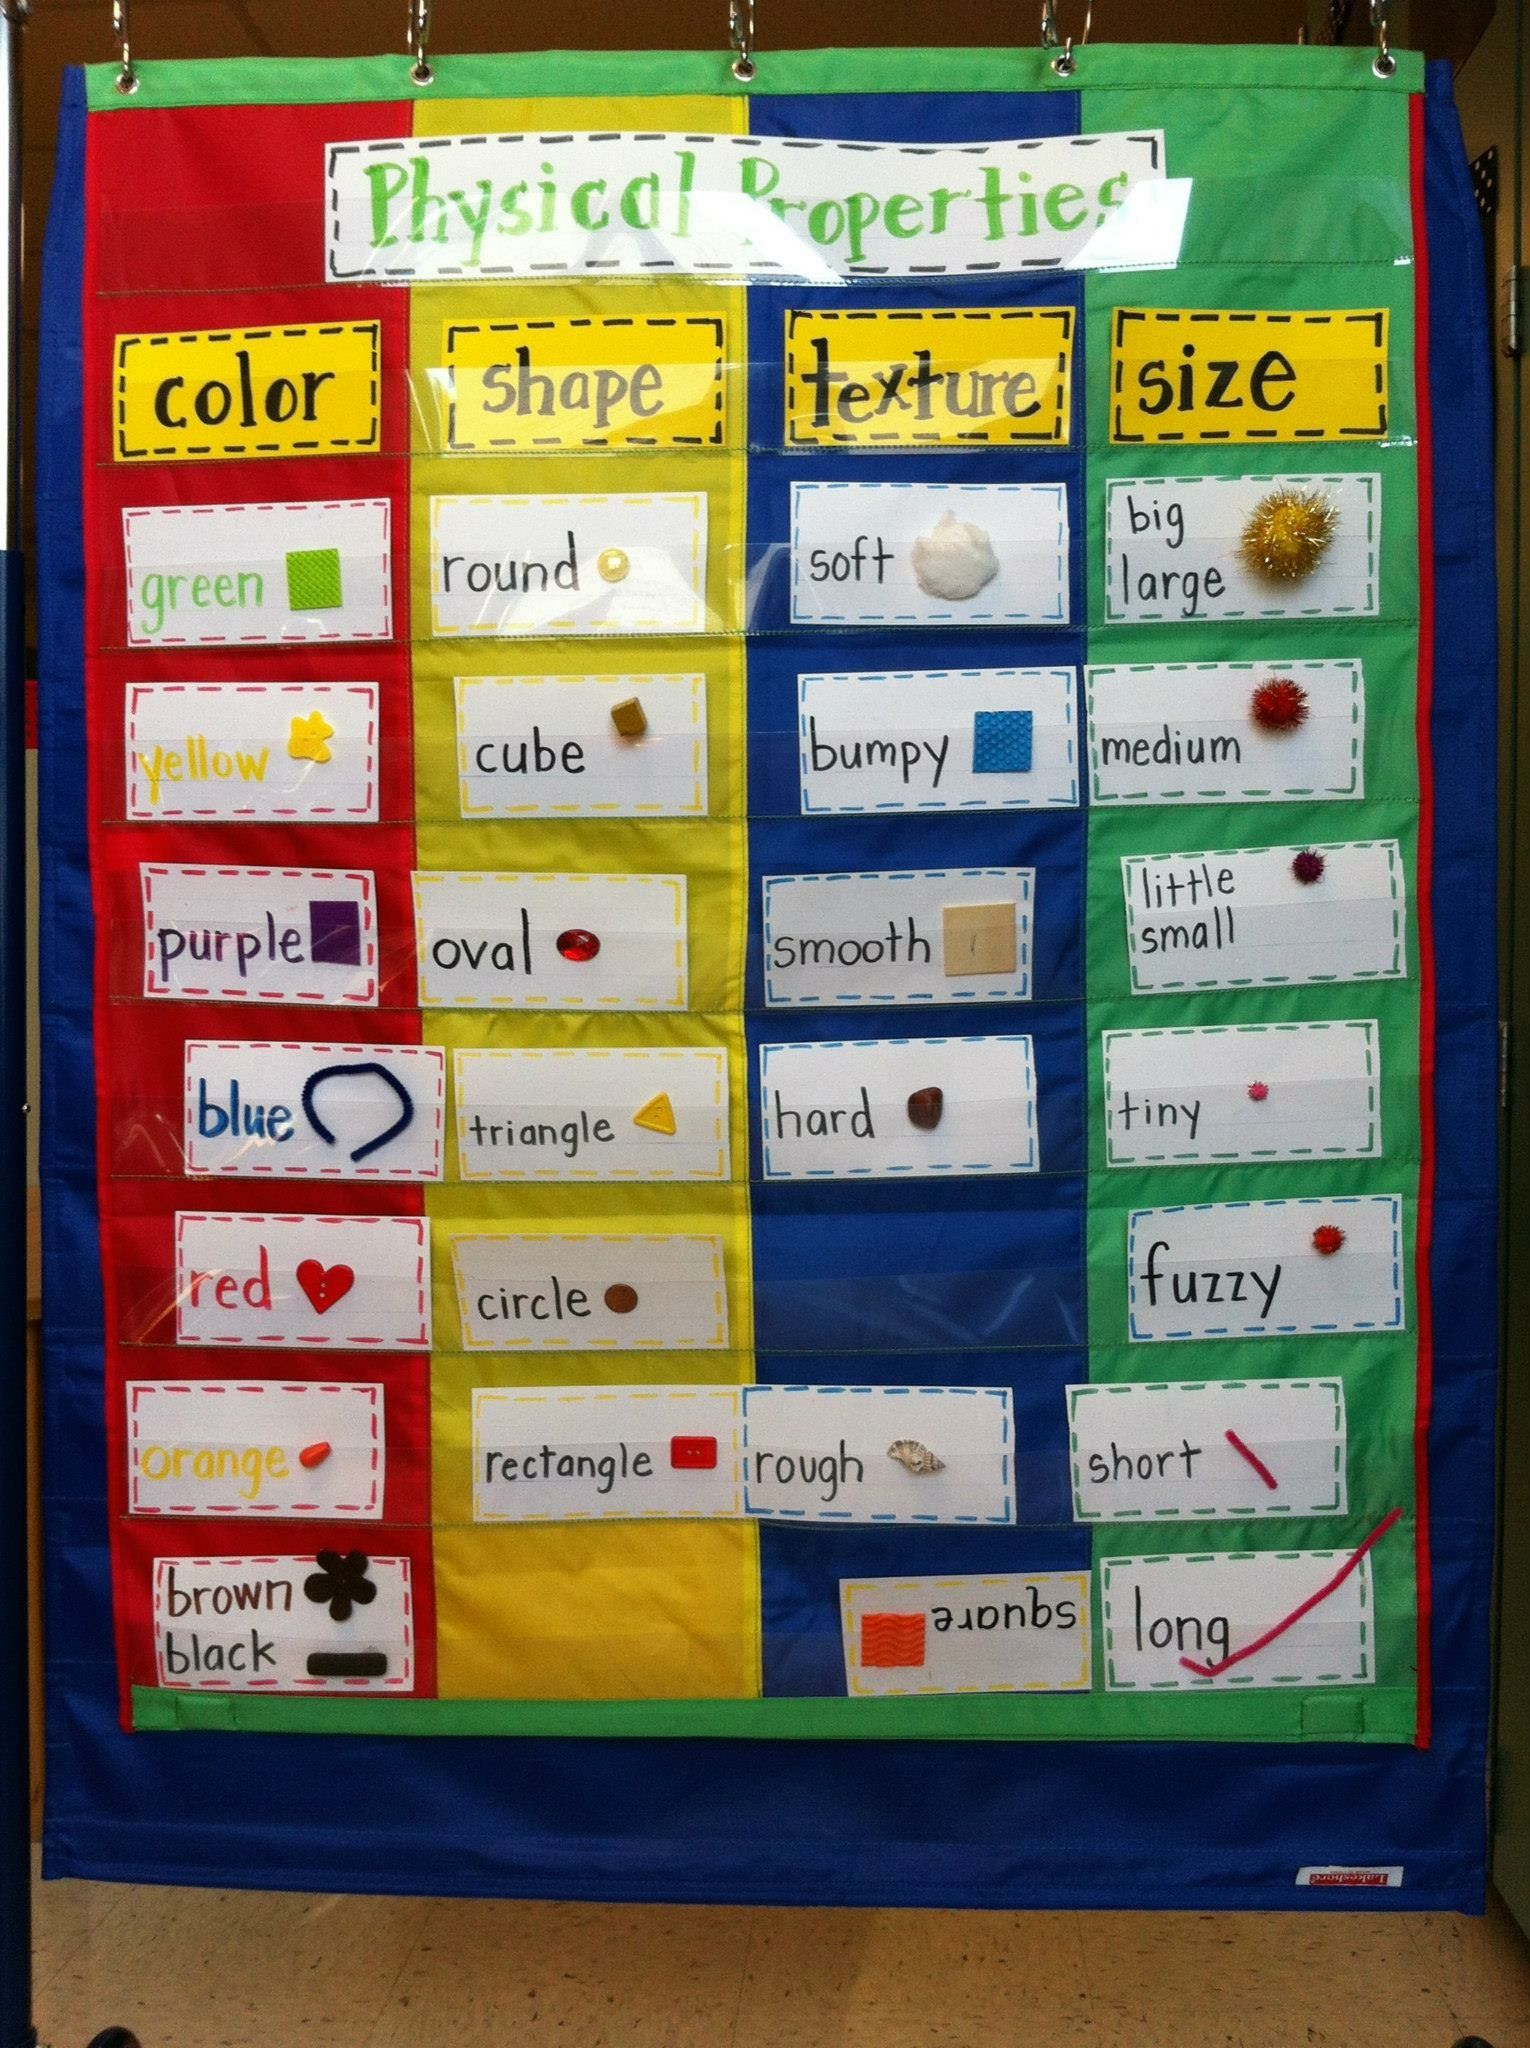 Physical Properties Science Word Wall With Images